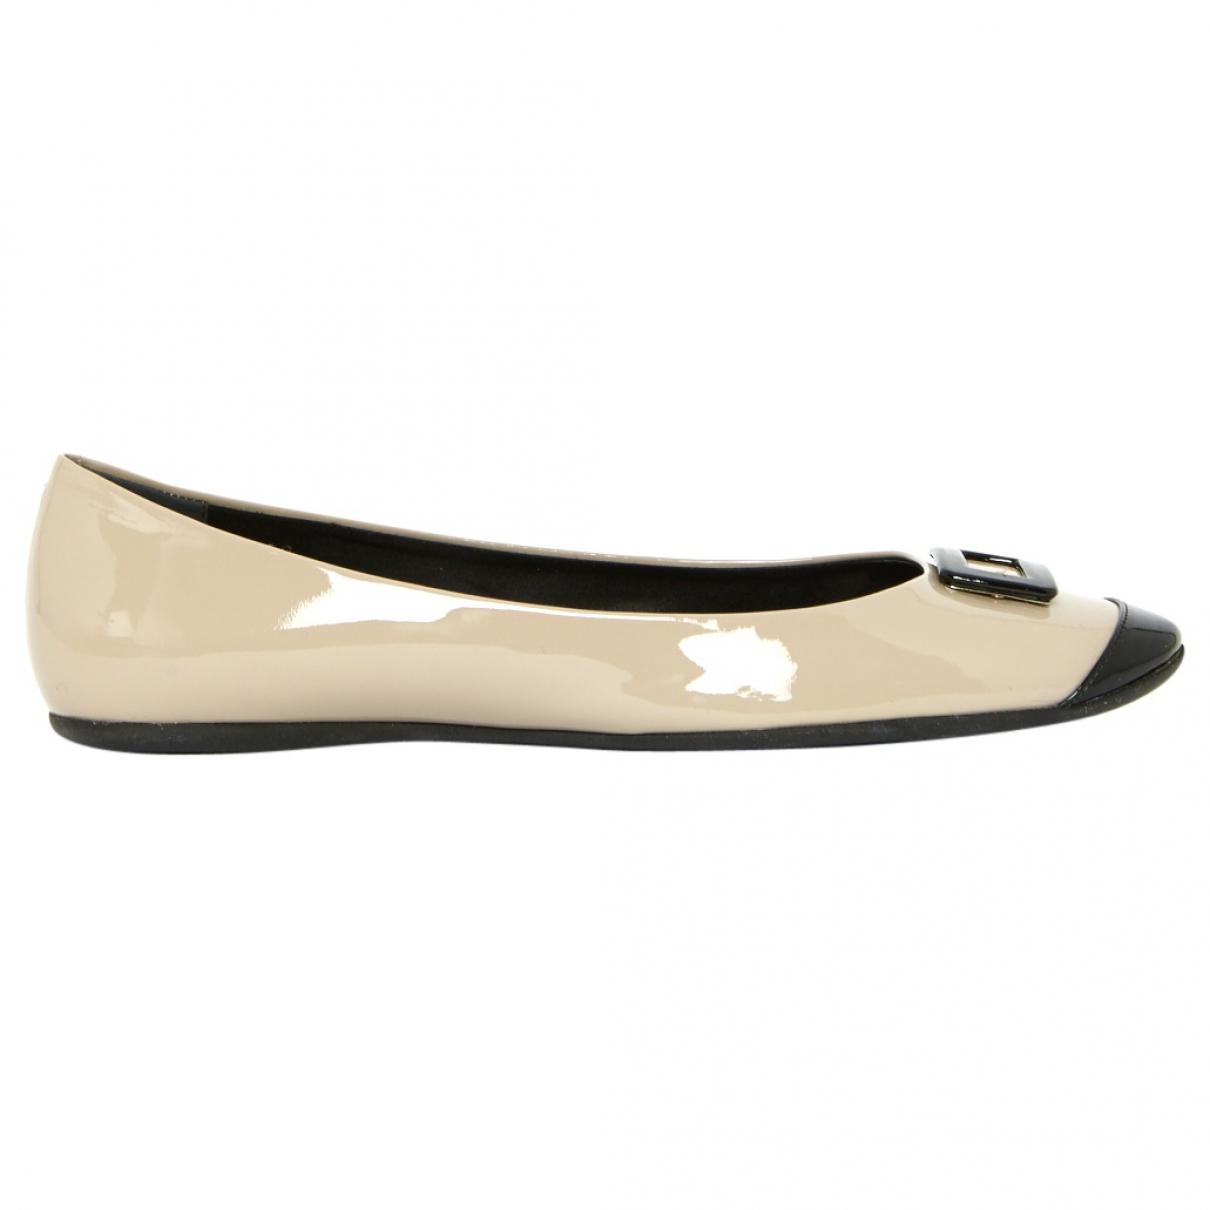 7fa89ed4b355 Lyst - Roger Vivier Pre-owned Patent Leather Flats.